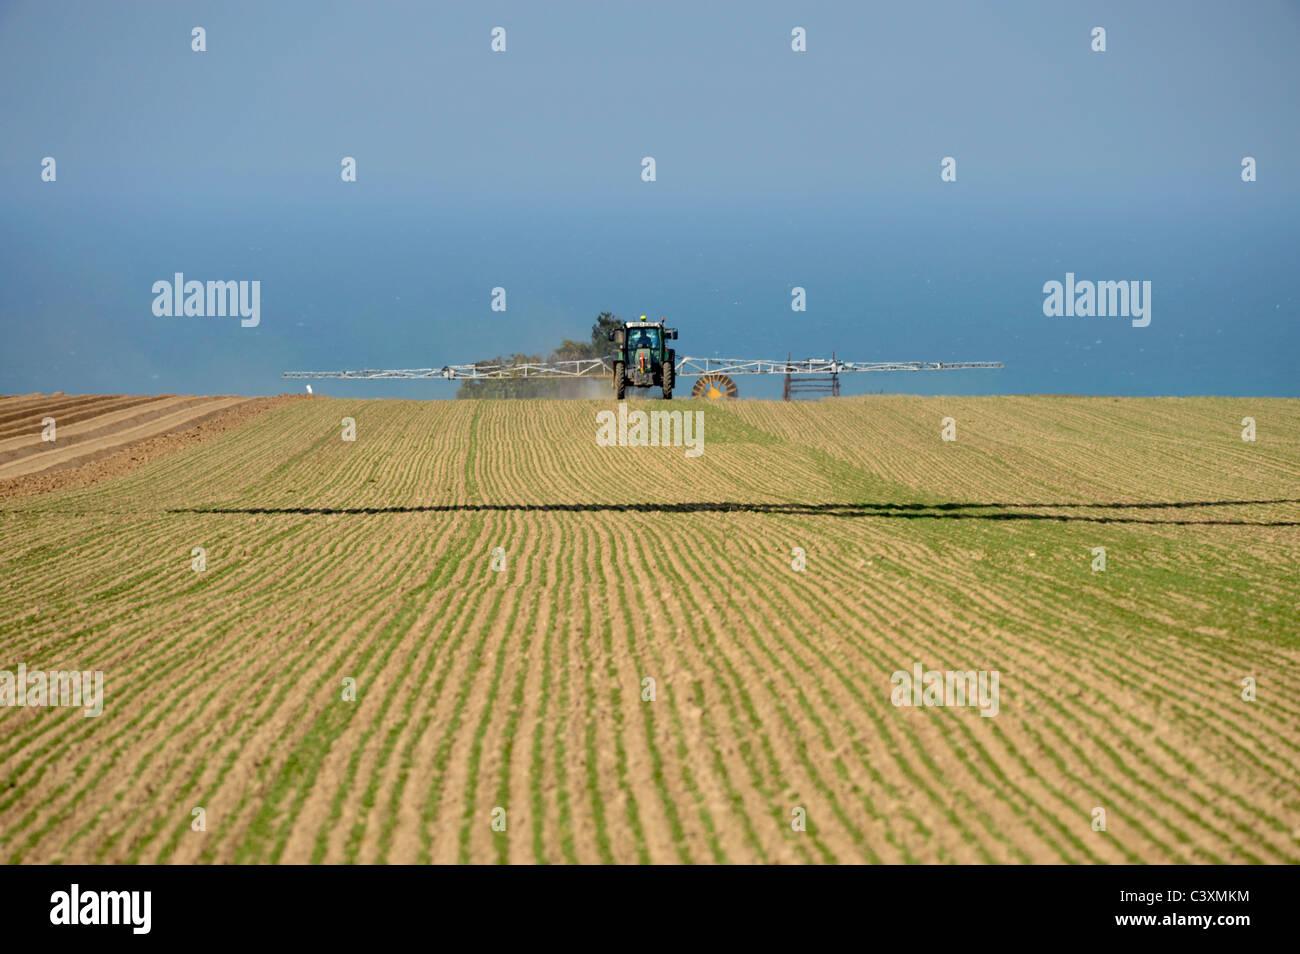 Tractor sprays a field, Manneville-ès-Plains, Normandy, Seine-Maritime, France - Stock Image